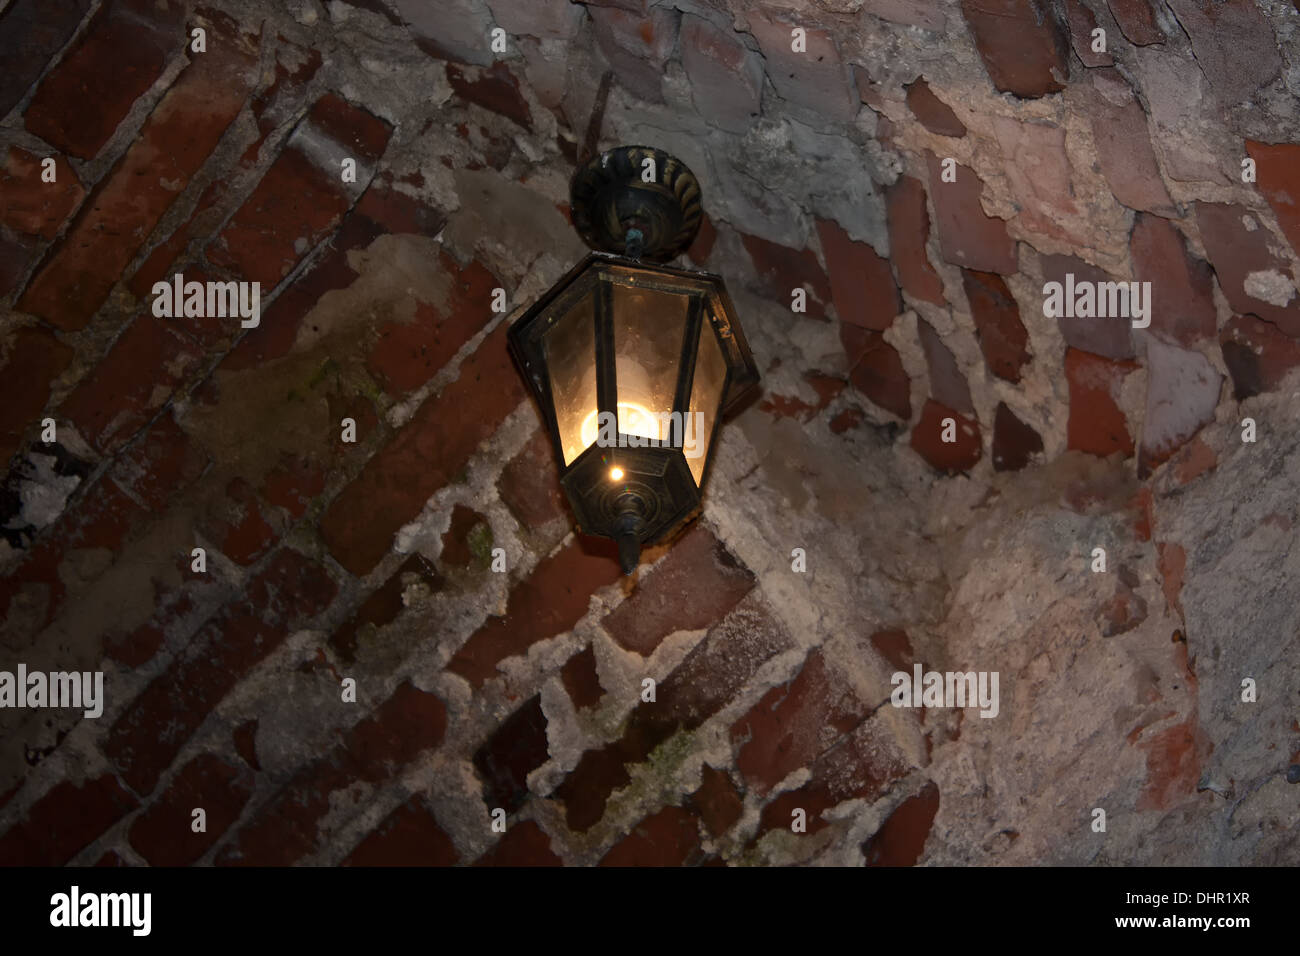 Old red bricks wall and light hanging on the wall. Dubno, Ukraine - Stock Image